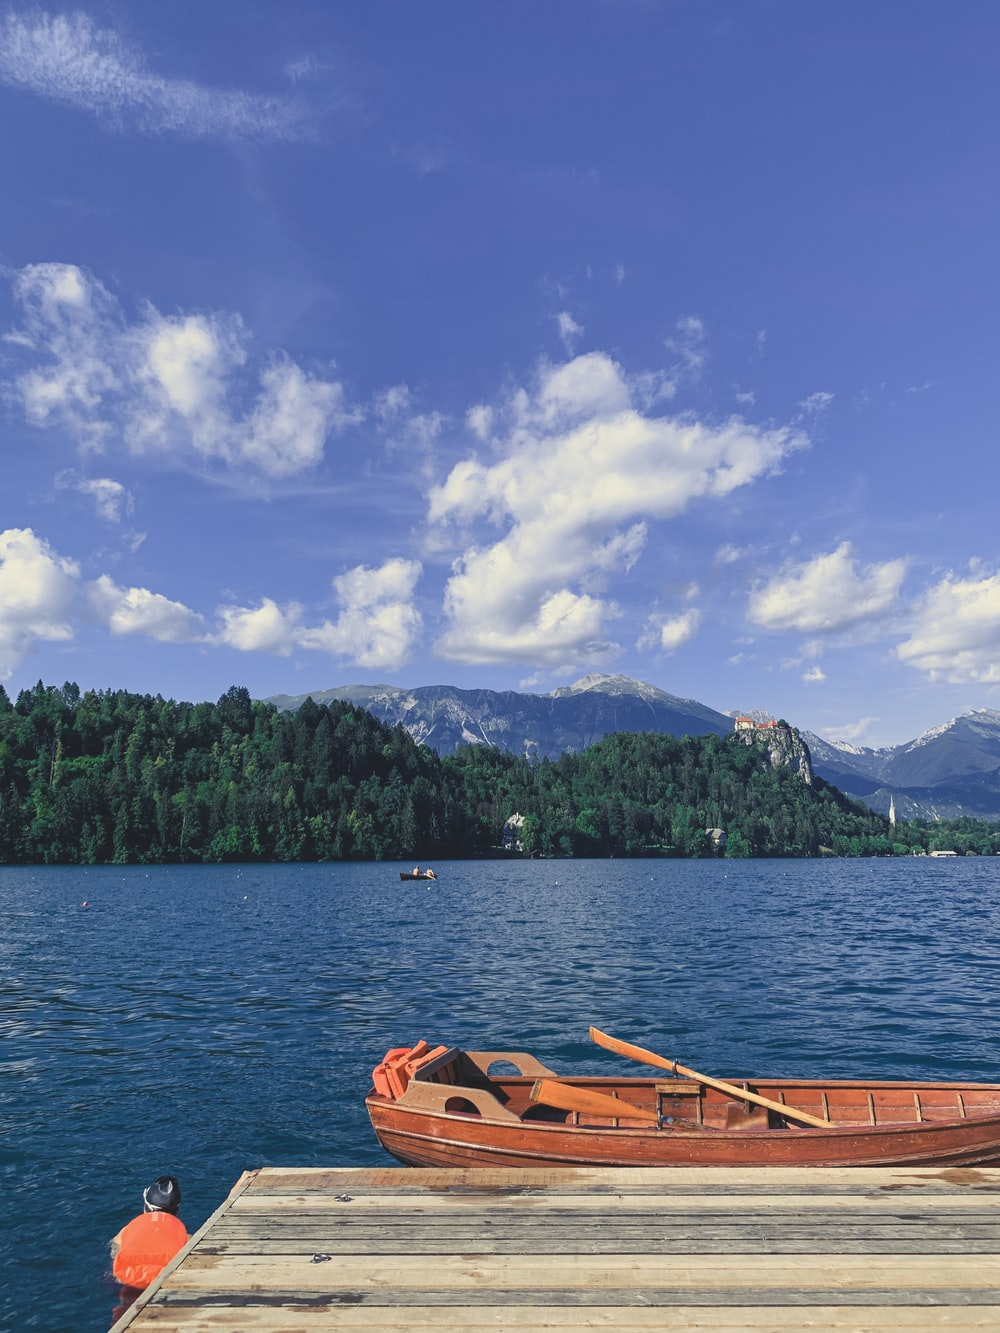 brown boat on body of water near green trees under blue sky during daytime